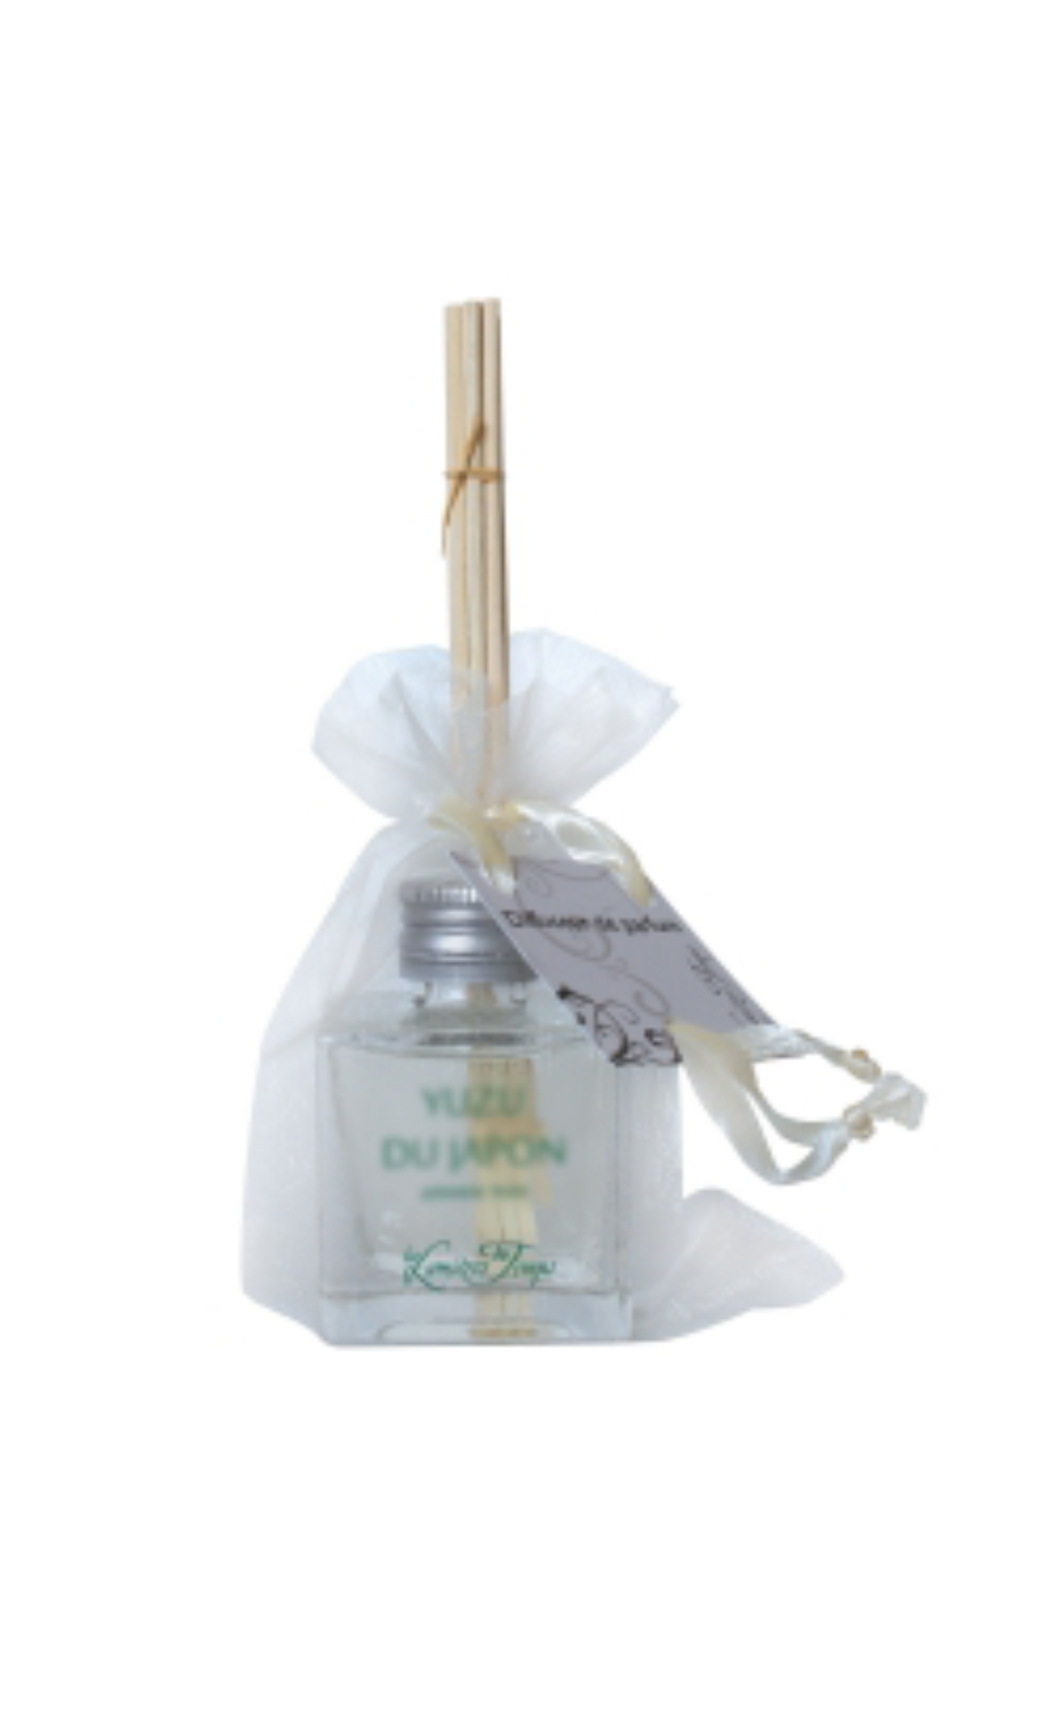 Cotton Flower Scented Reed Diffuser by Les Lumieres du Temps - Shop Aromatic Diffusers Online in India